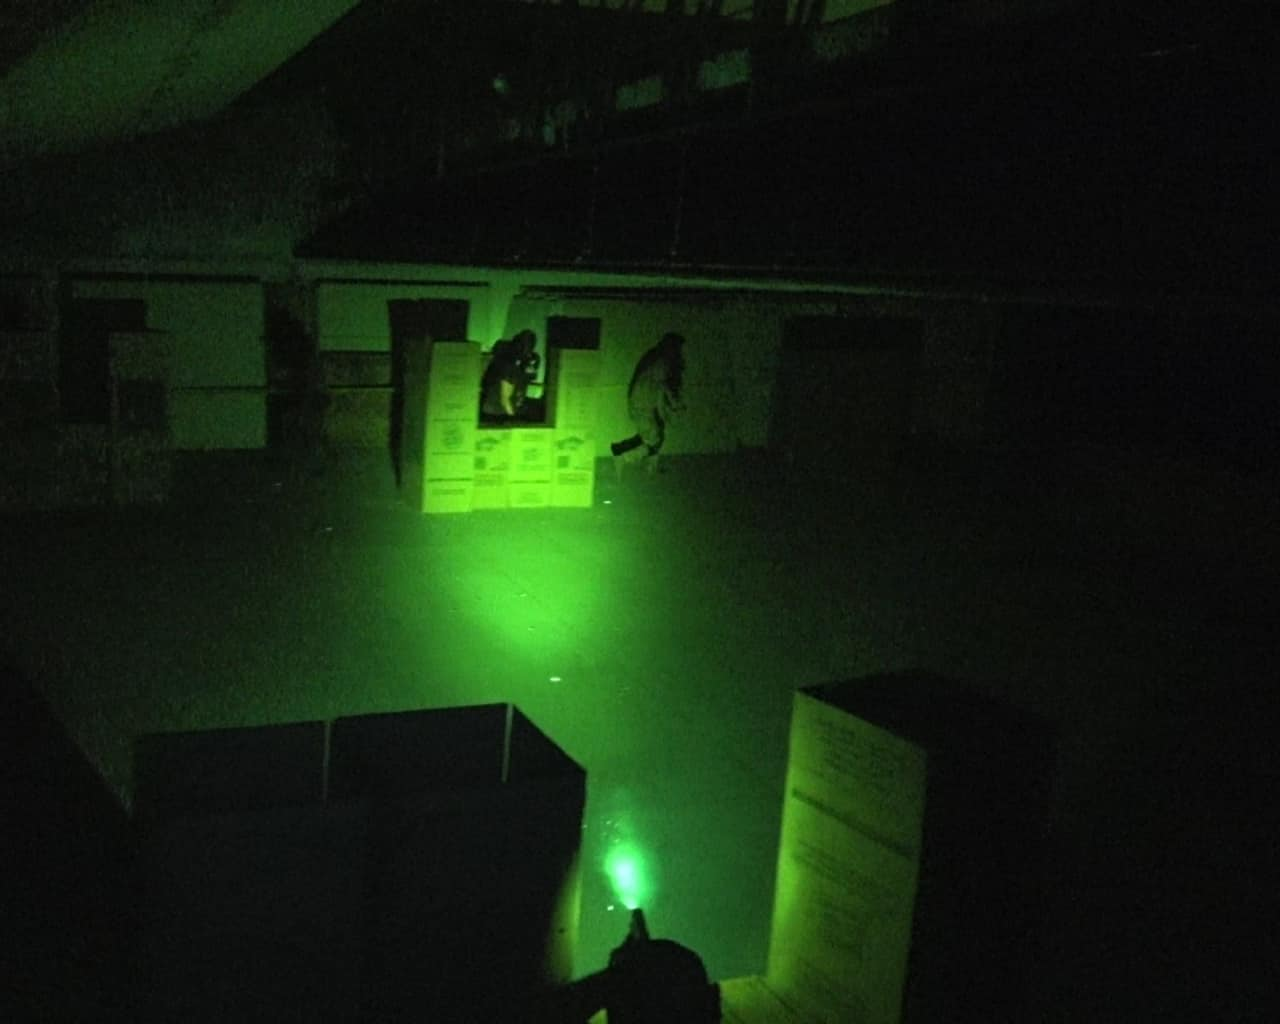 Low light force on force training with sims